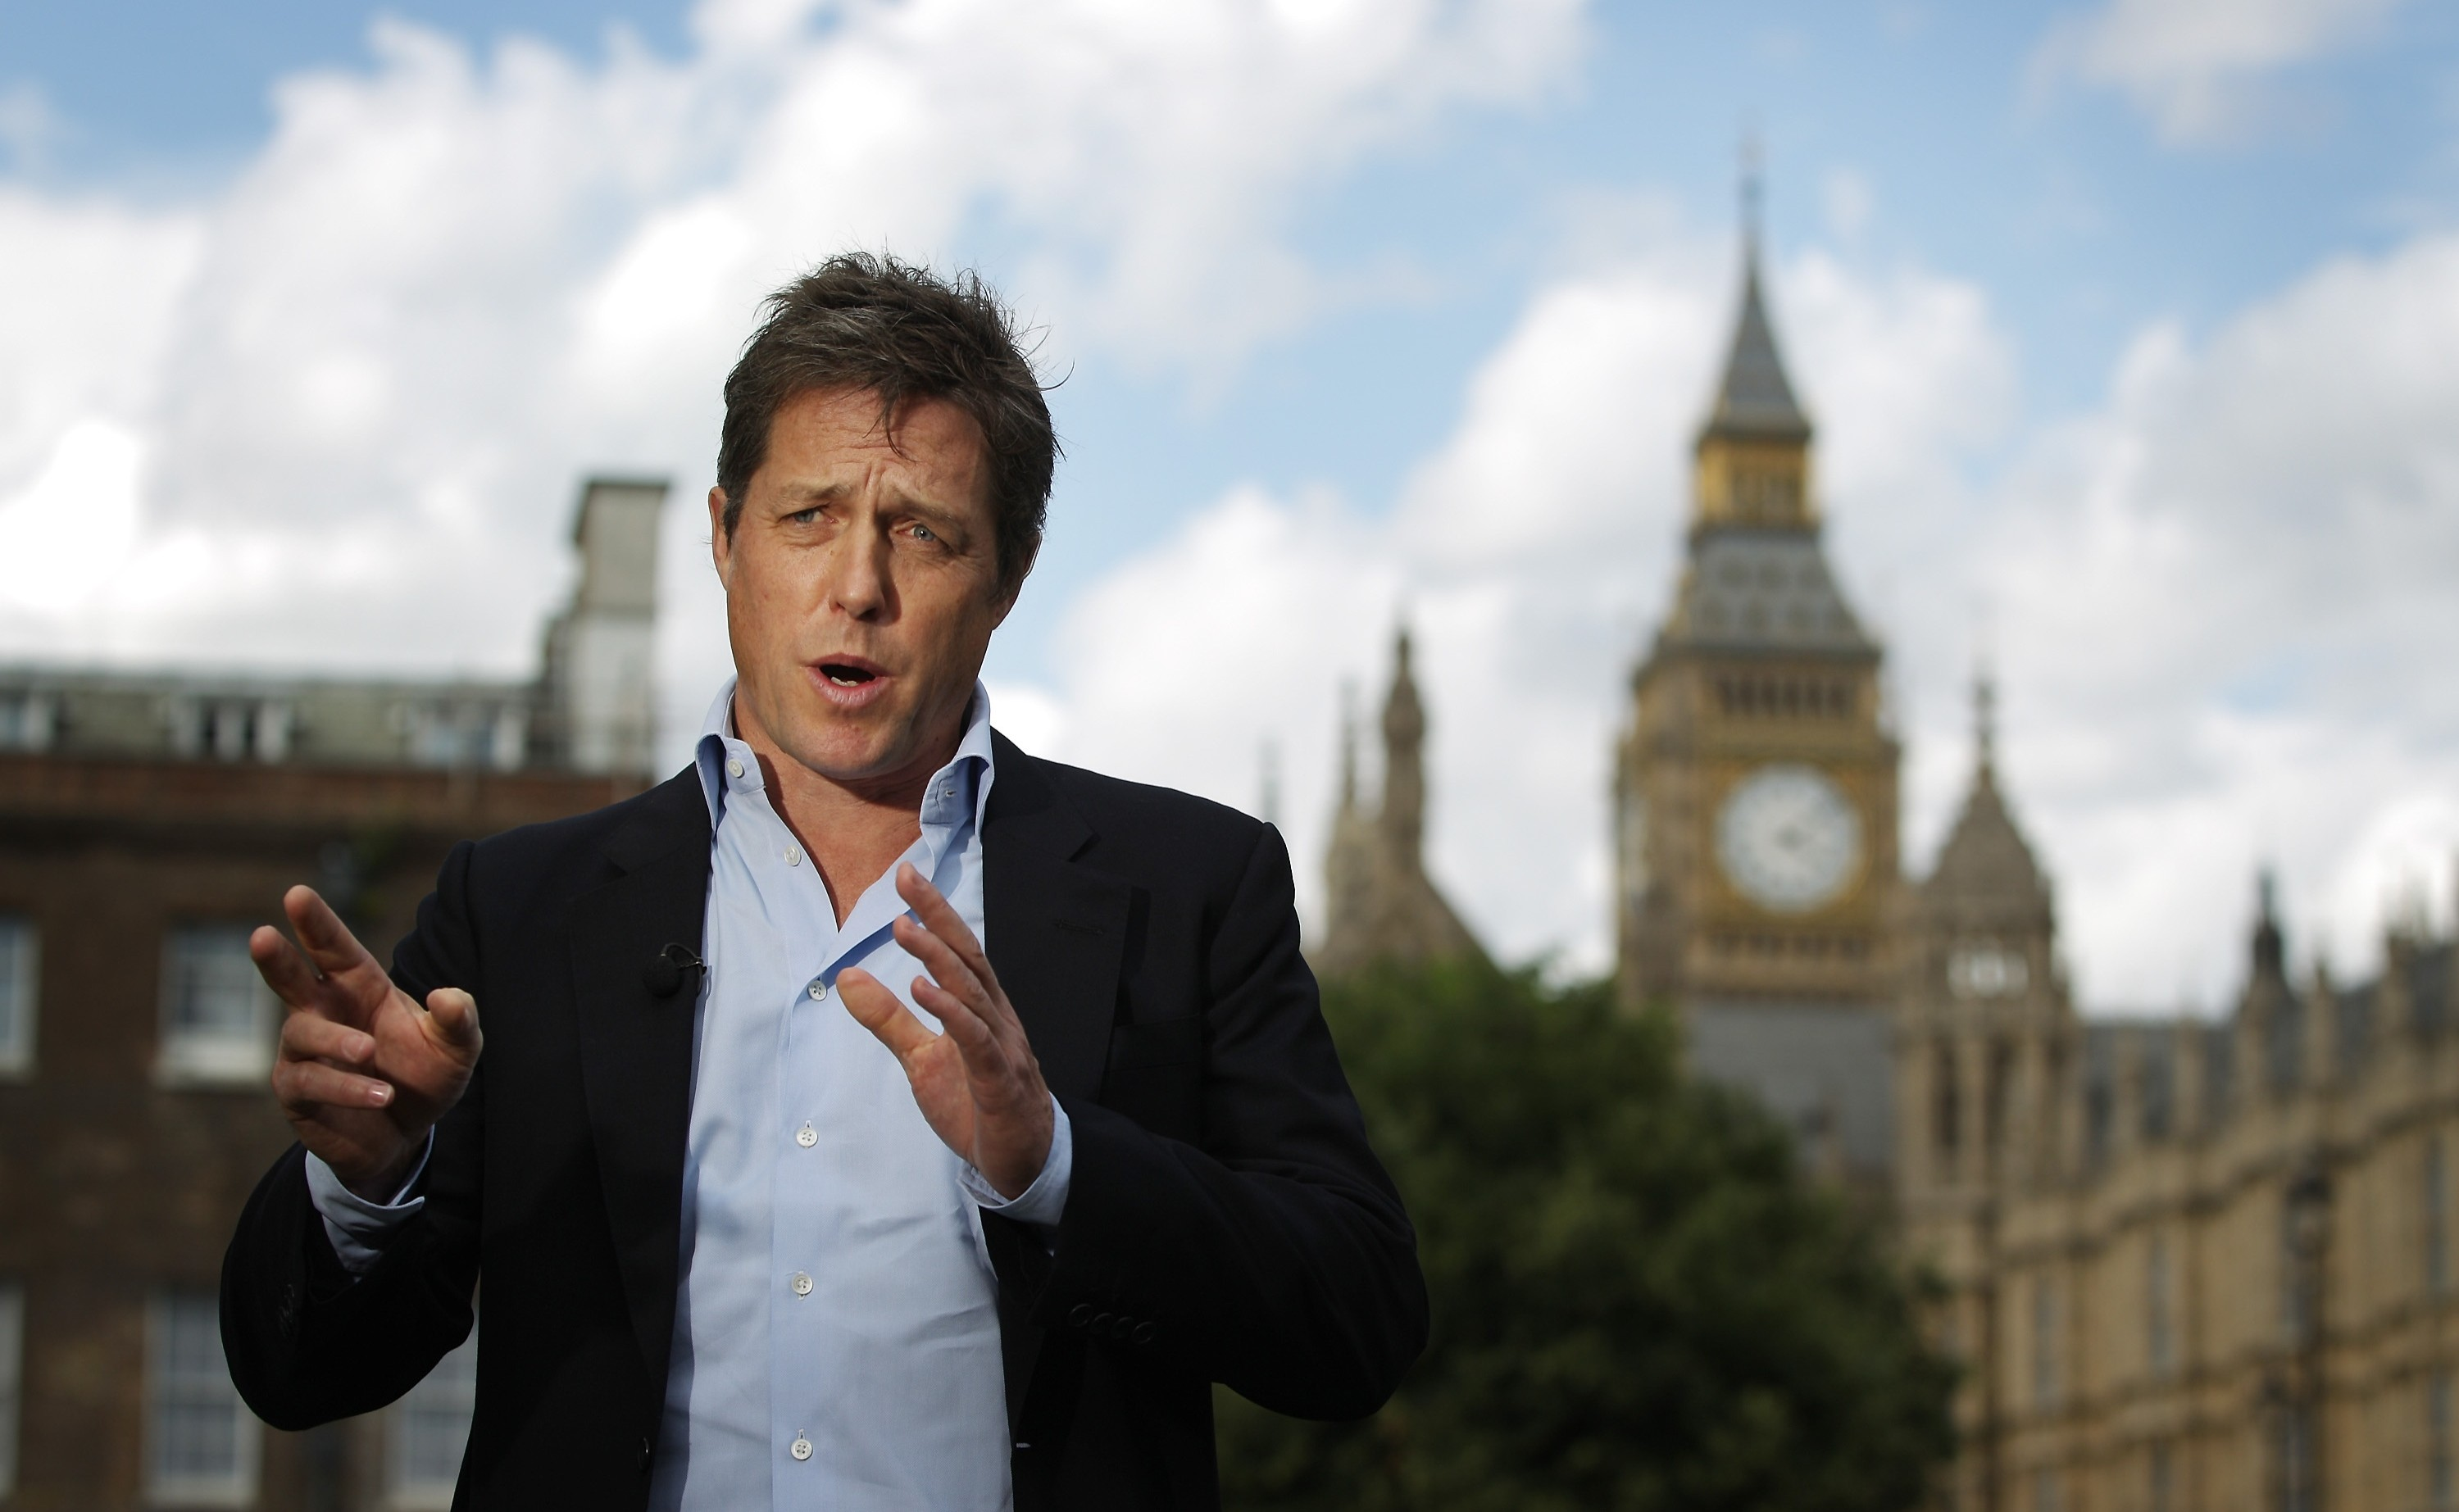 Hugh Grant accepts 'substantial sum' after settling phone-hacking claim